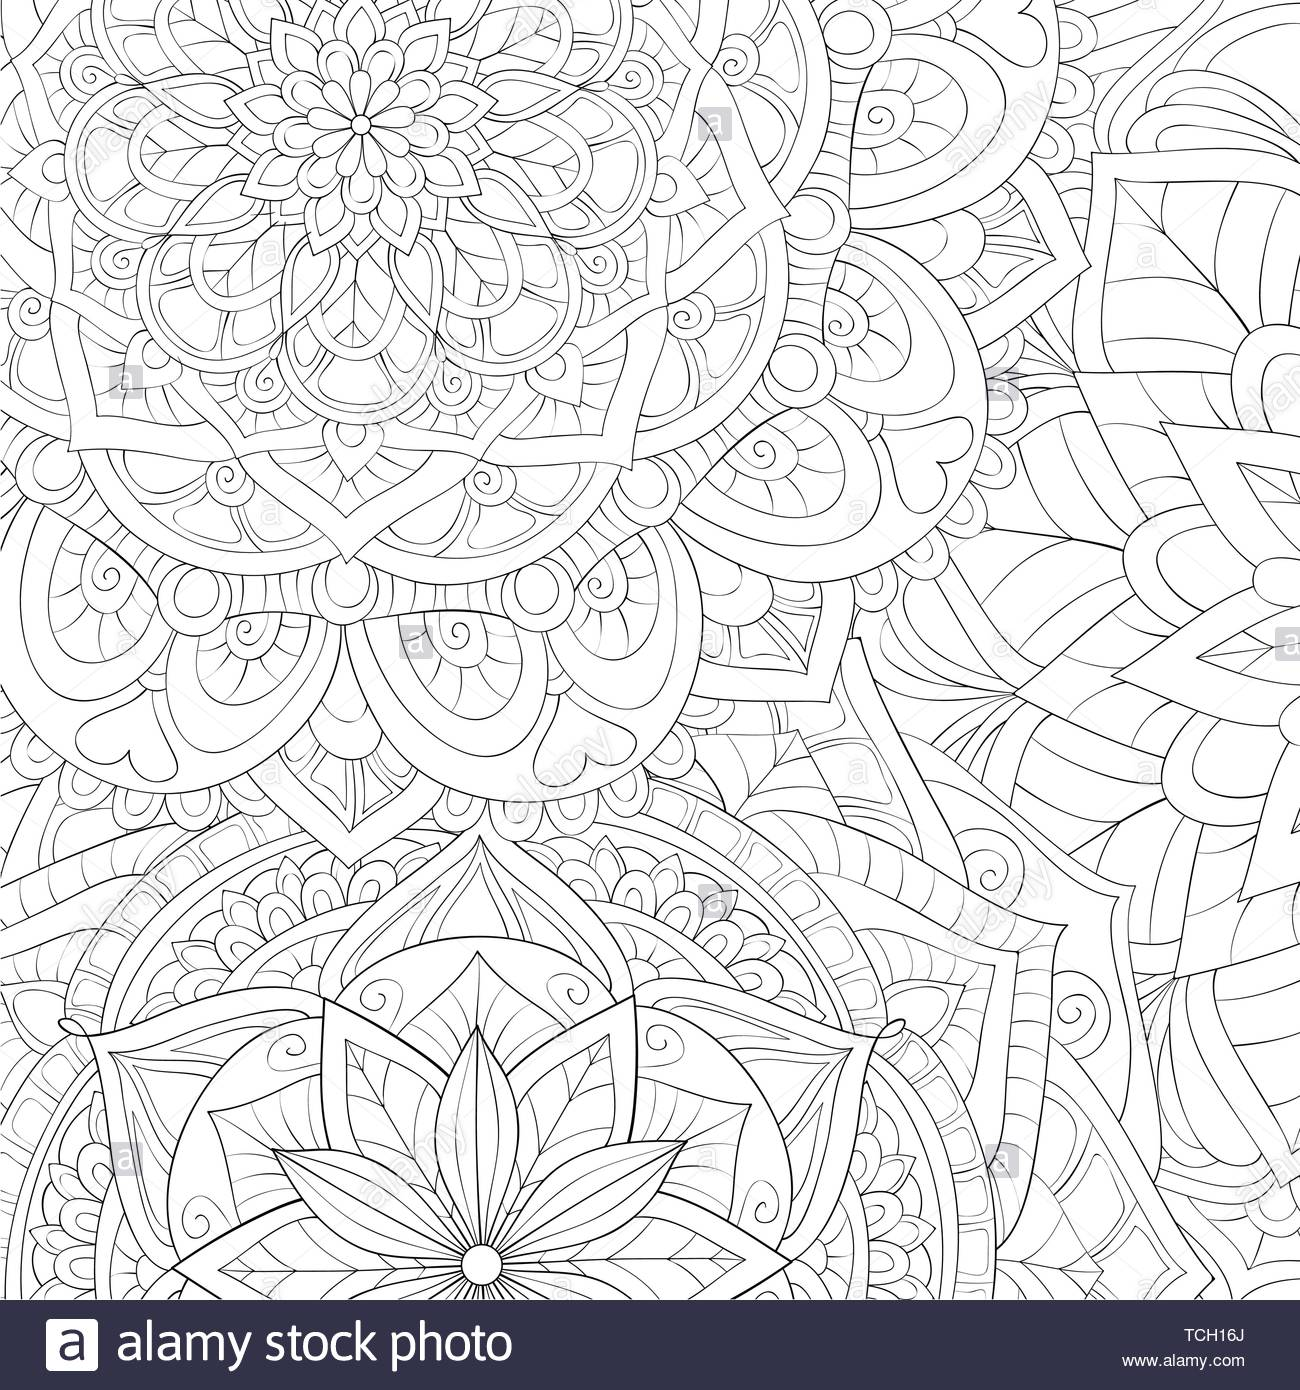 A Floral Abstract Background Image For Relaxing Activity A